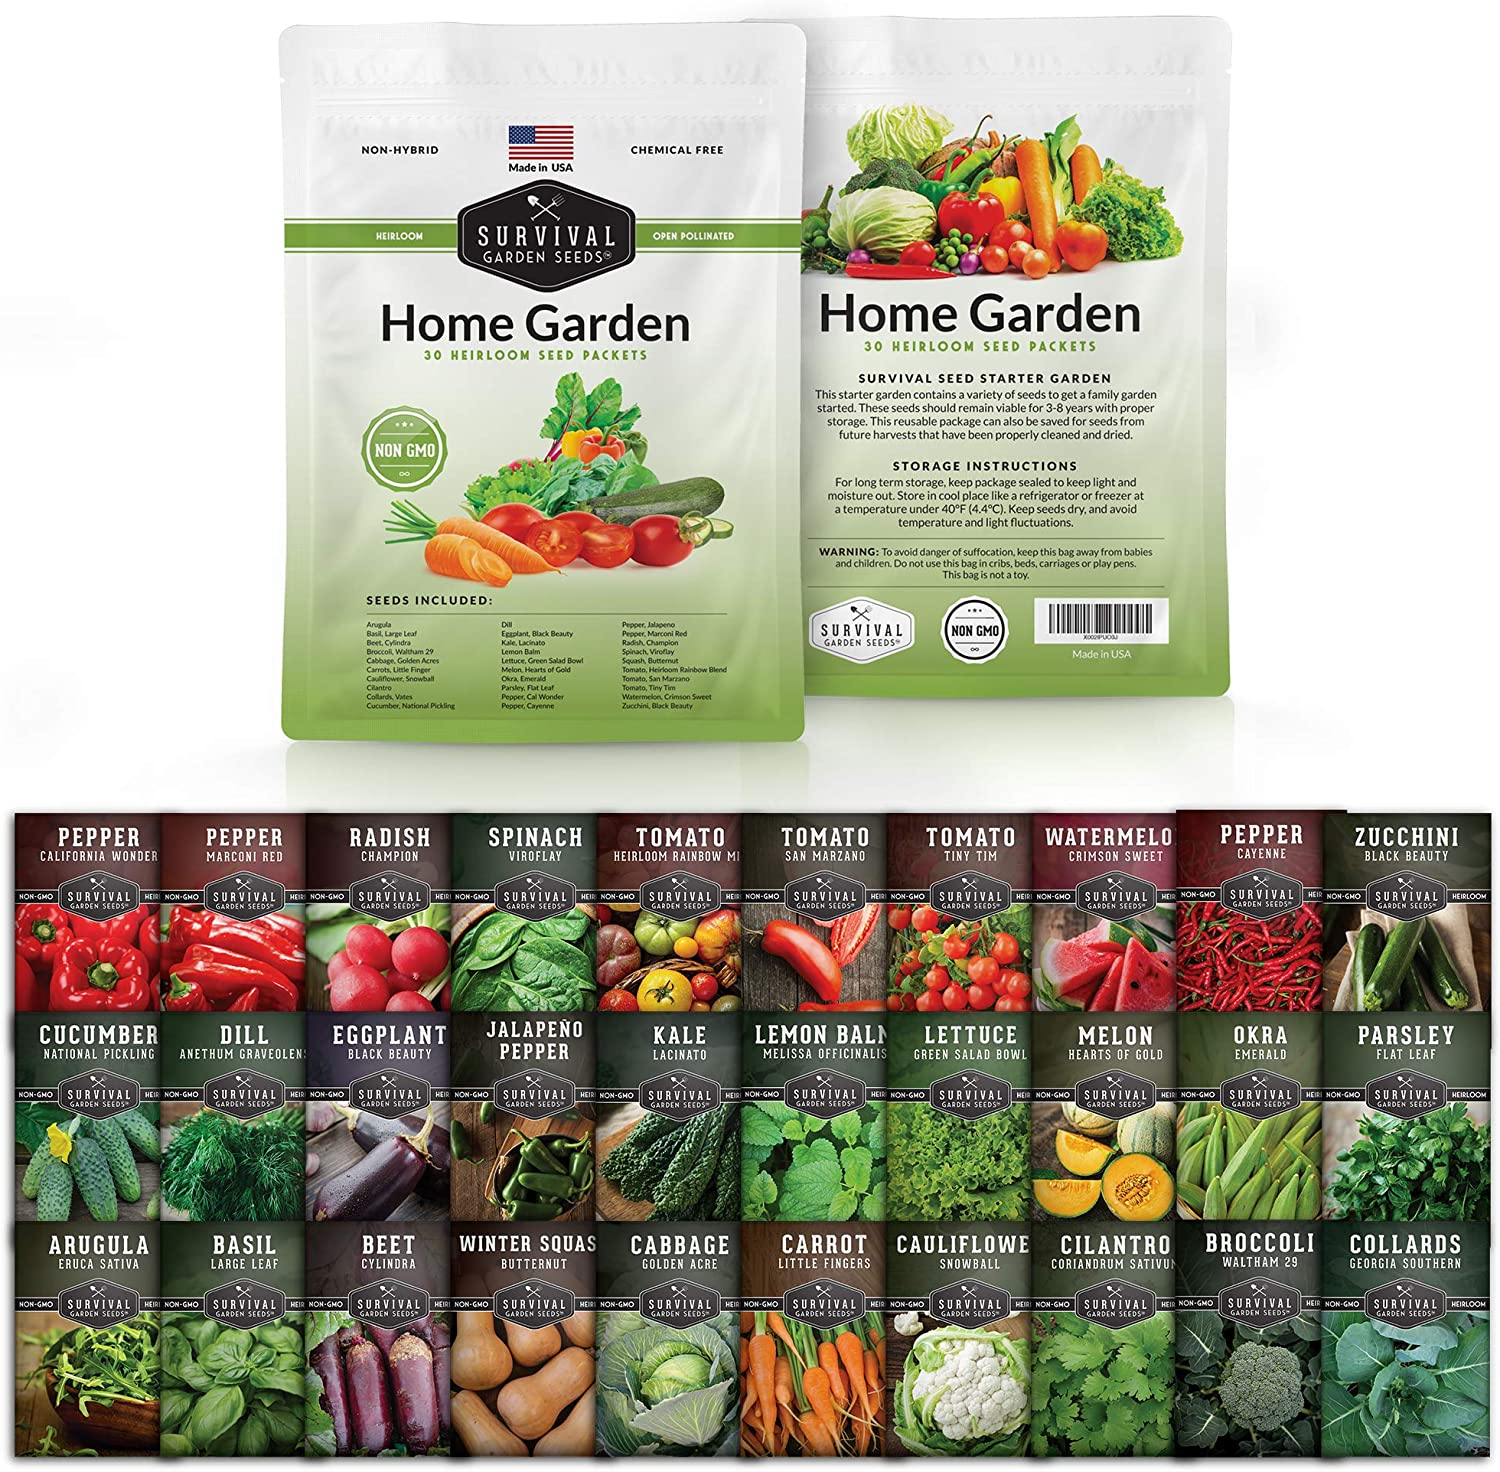 Survival Garden Seeds Home Garden Vegetable Seed Vault - Non-GMO Heirloom Survival Garden Seeds for Planting - Waterproof Packaging for Long Term Storage - 30 Varieties of Vegetables